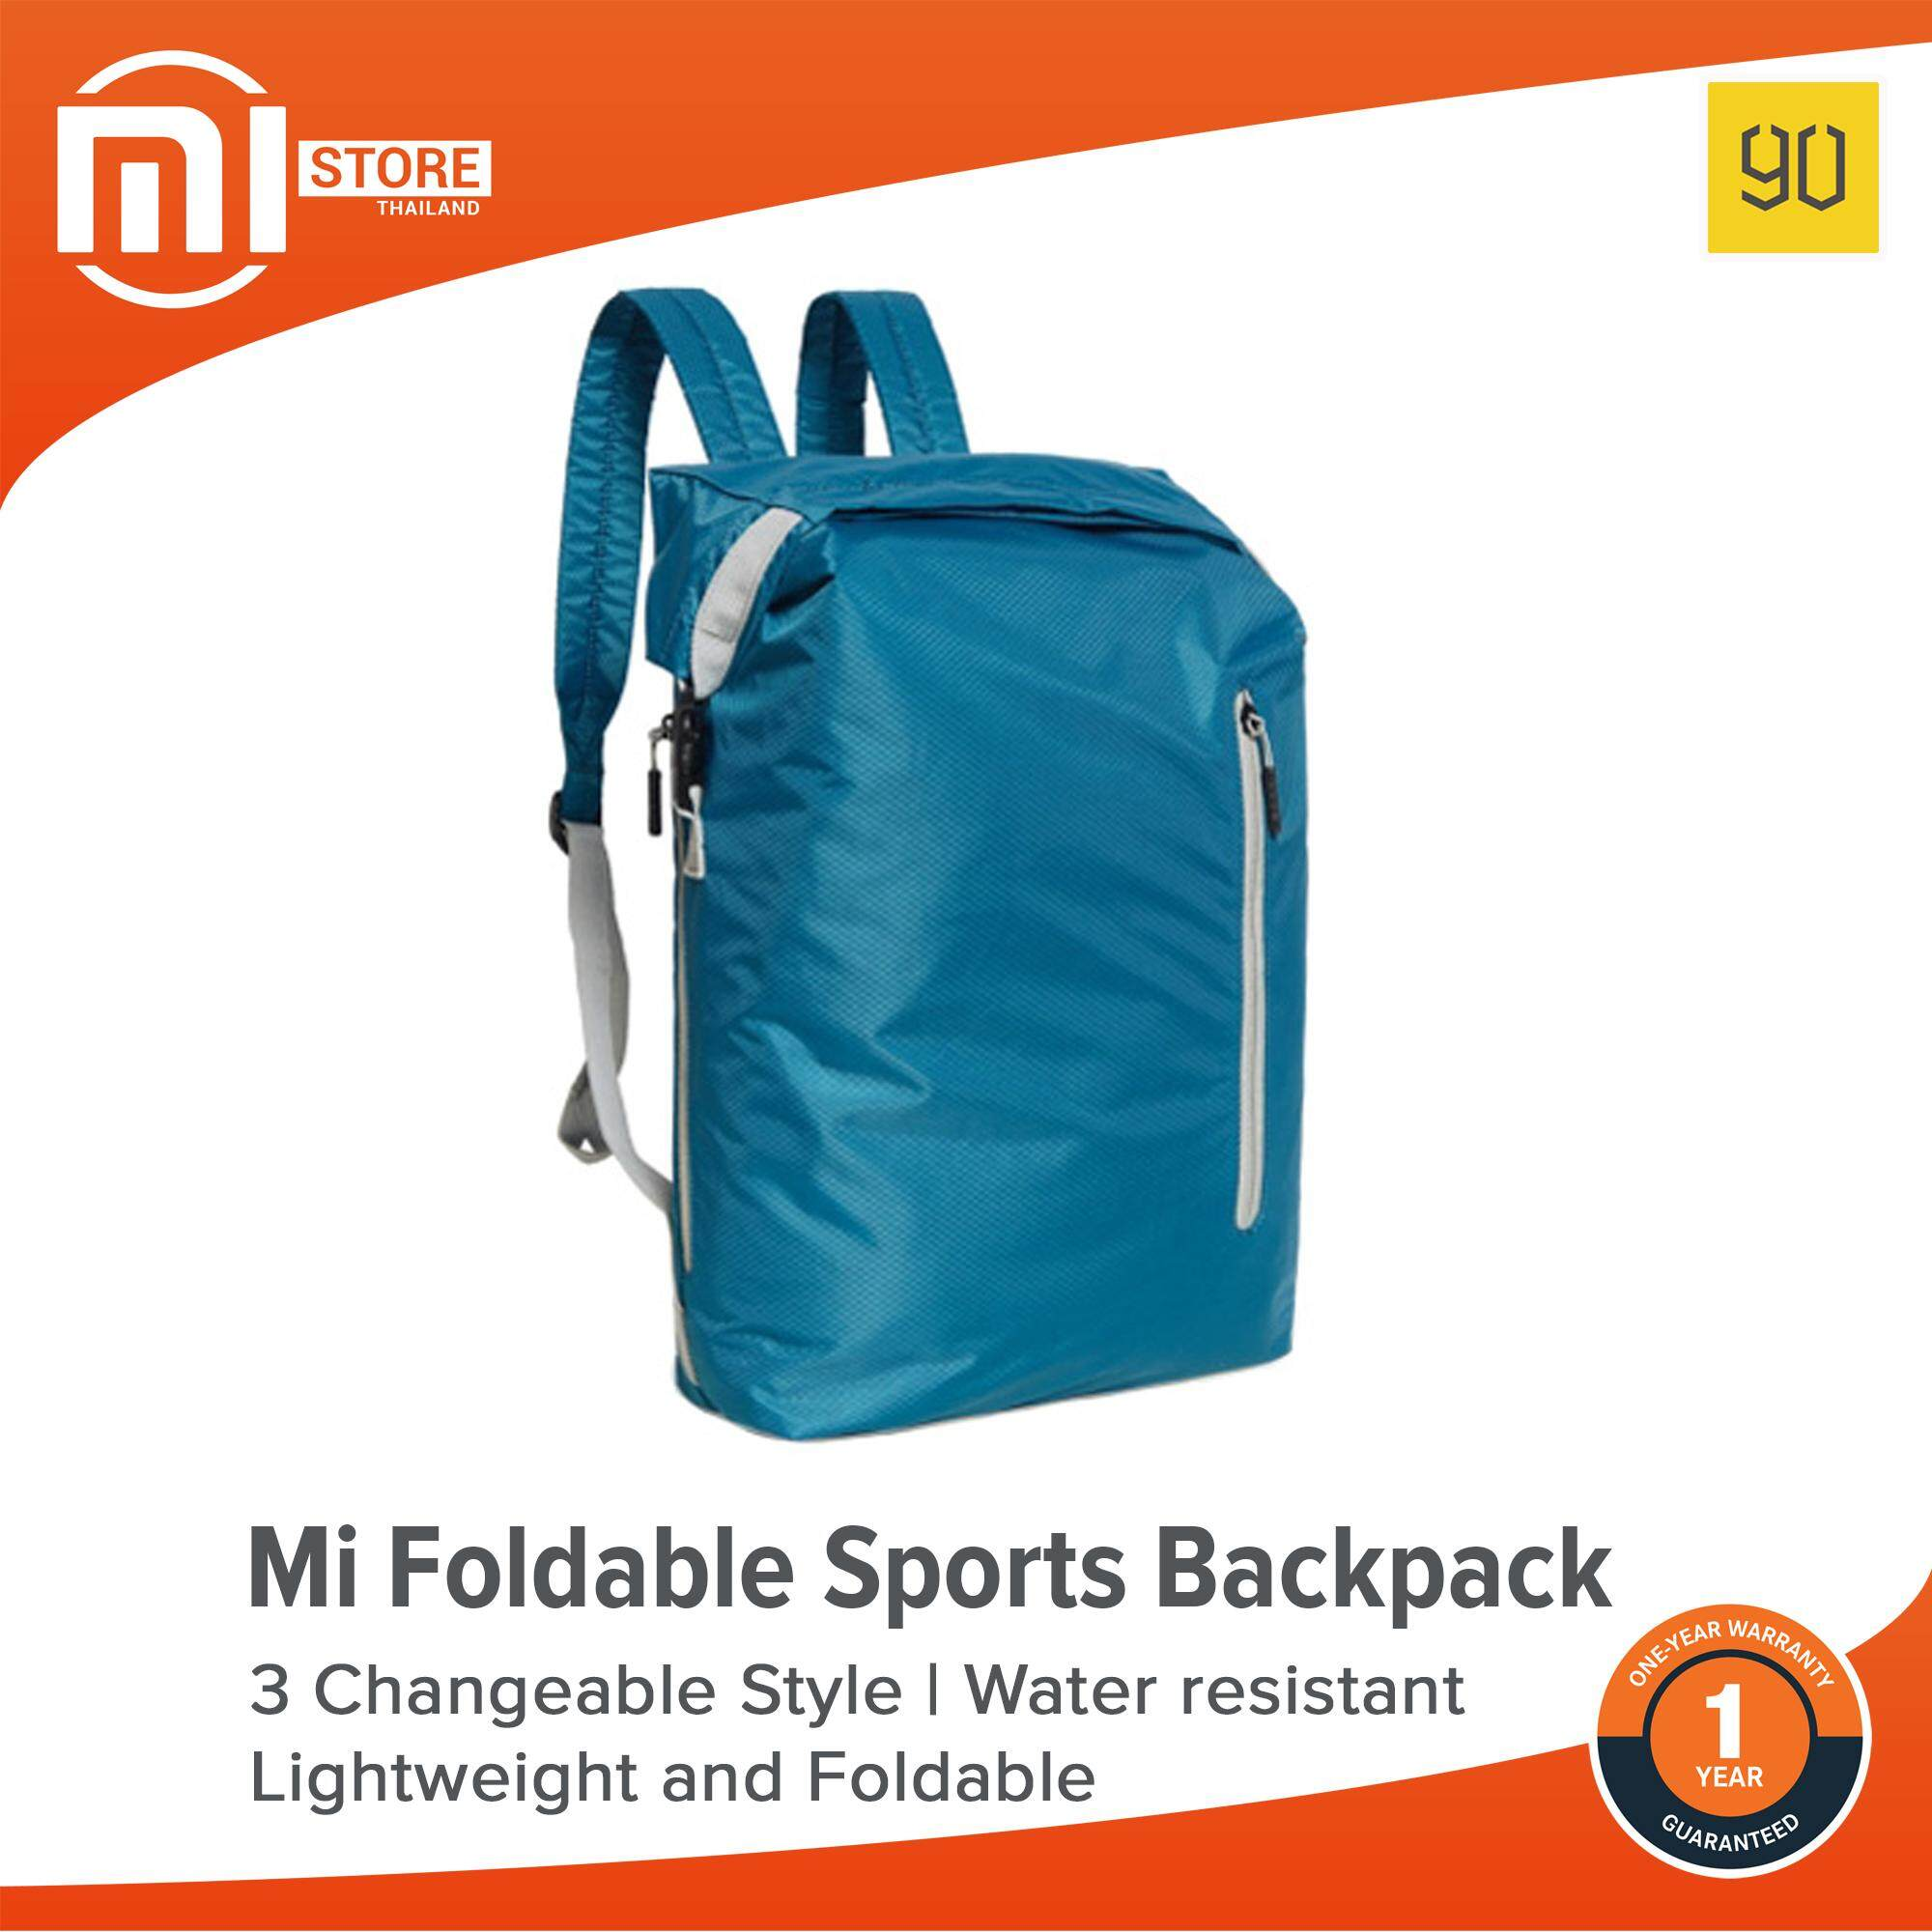 Mi Foldable Sports Backpack